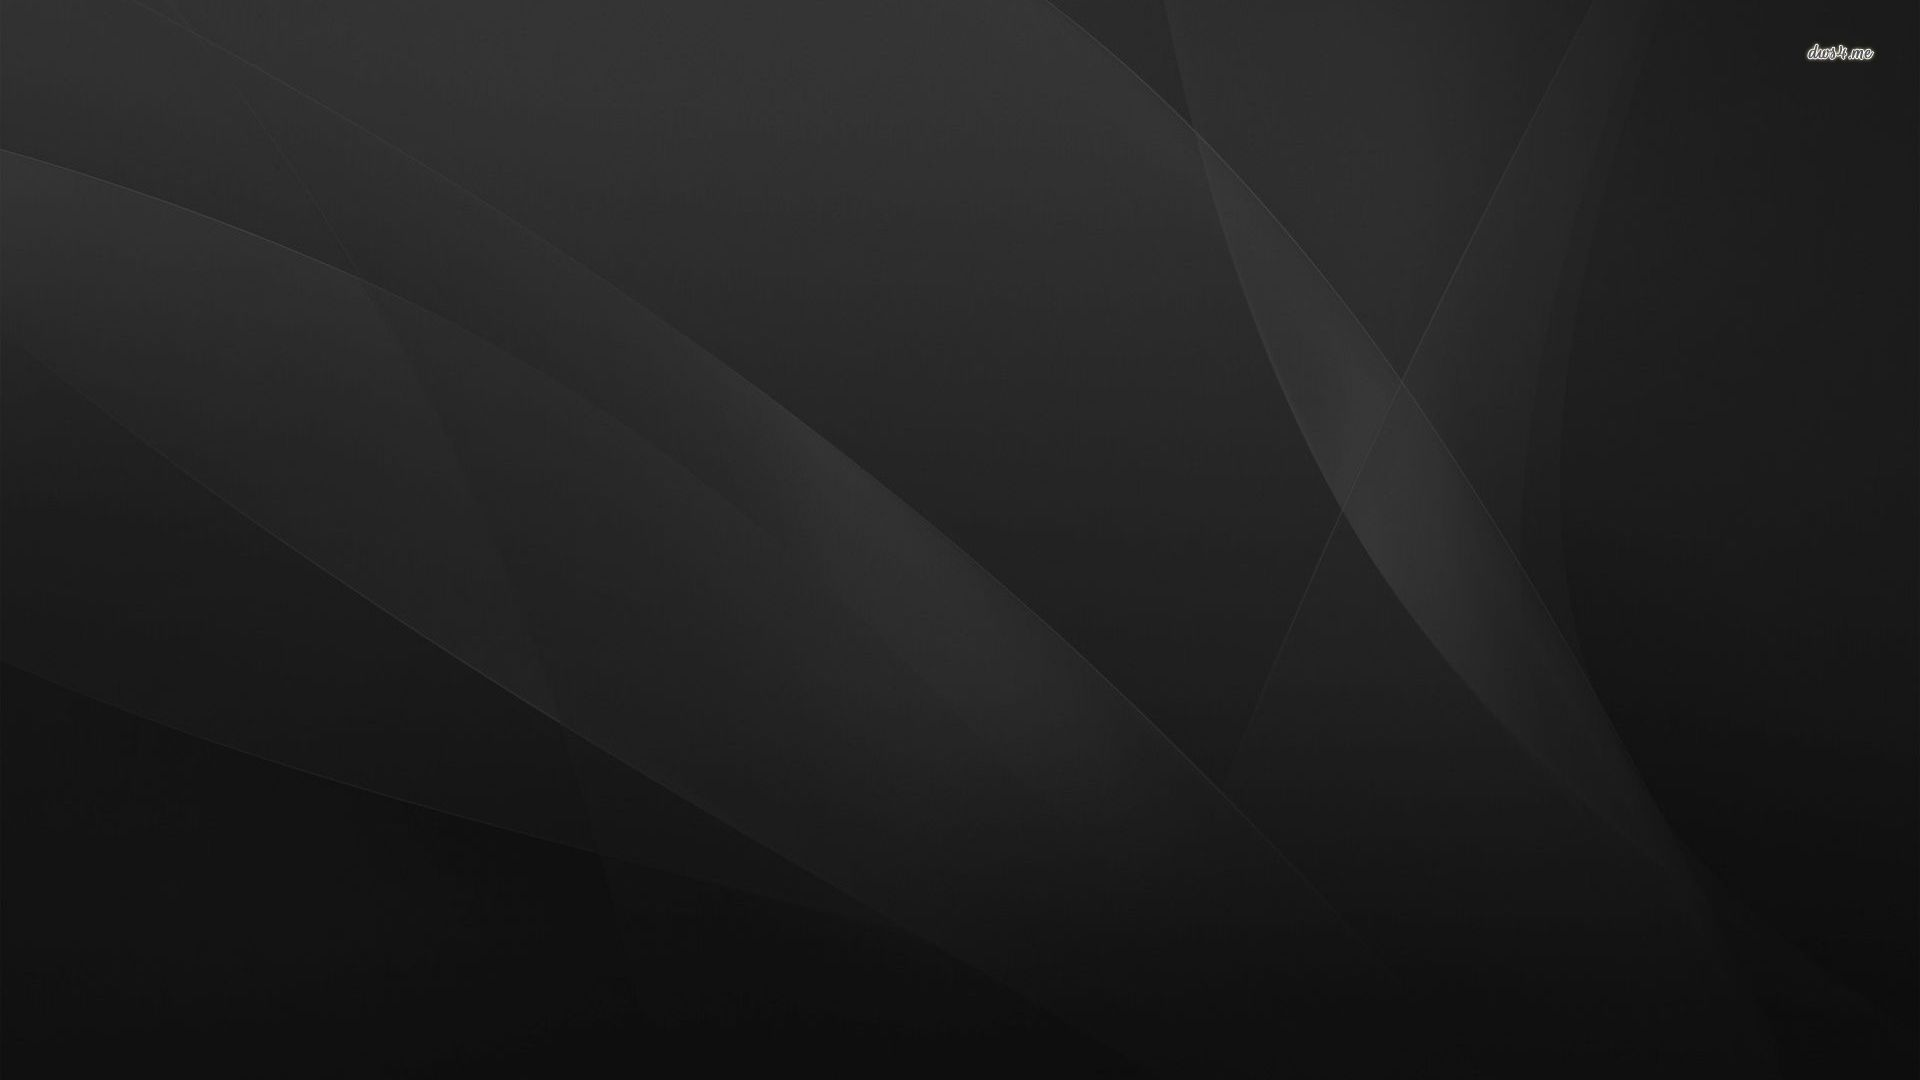 Black And Grey Abstract Wallpapers Top Free Black And Grey Abstract Backgrounds Wallpaperaccess